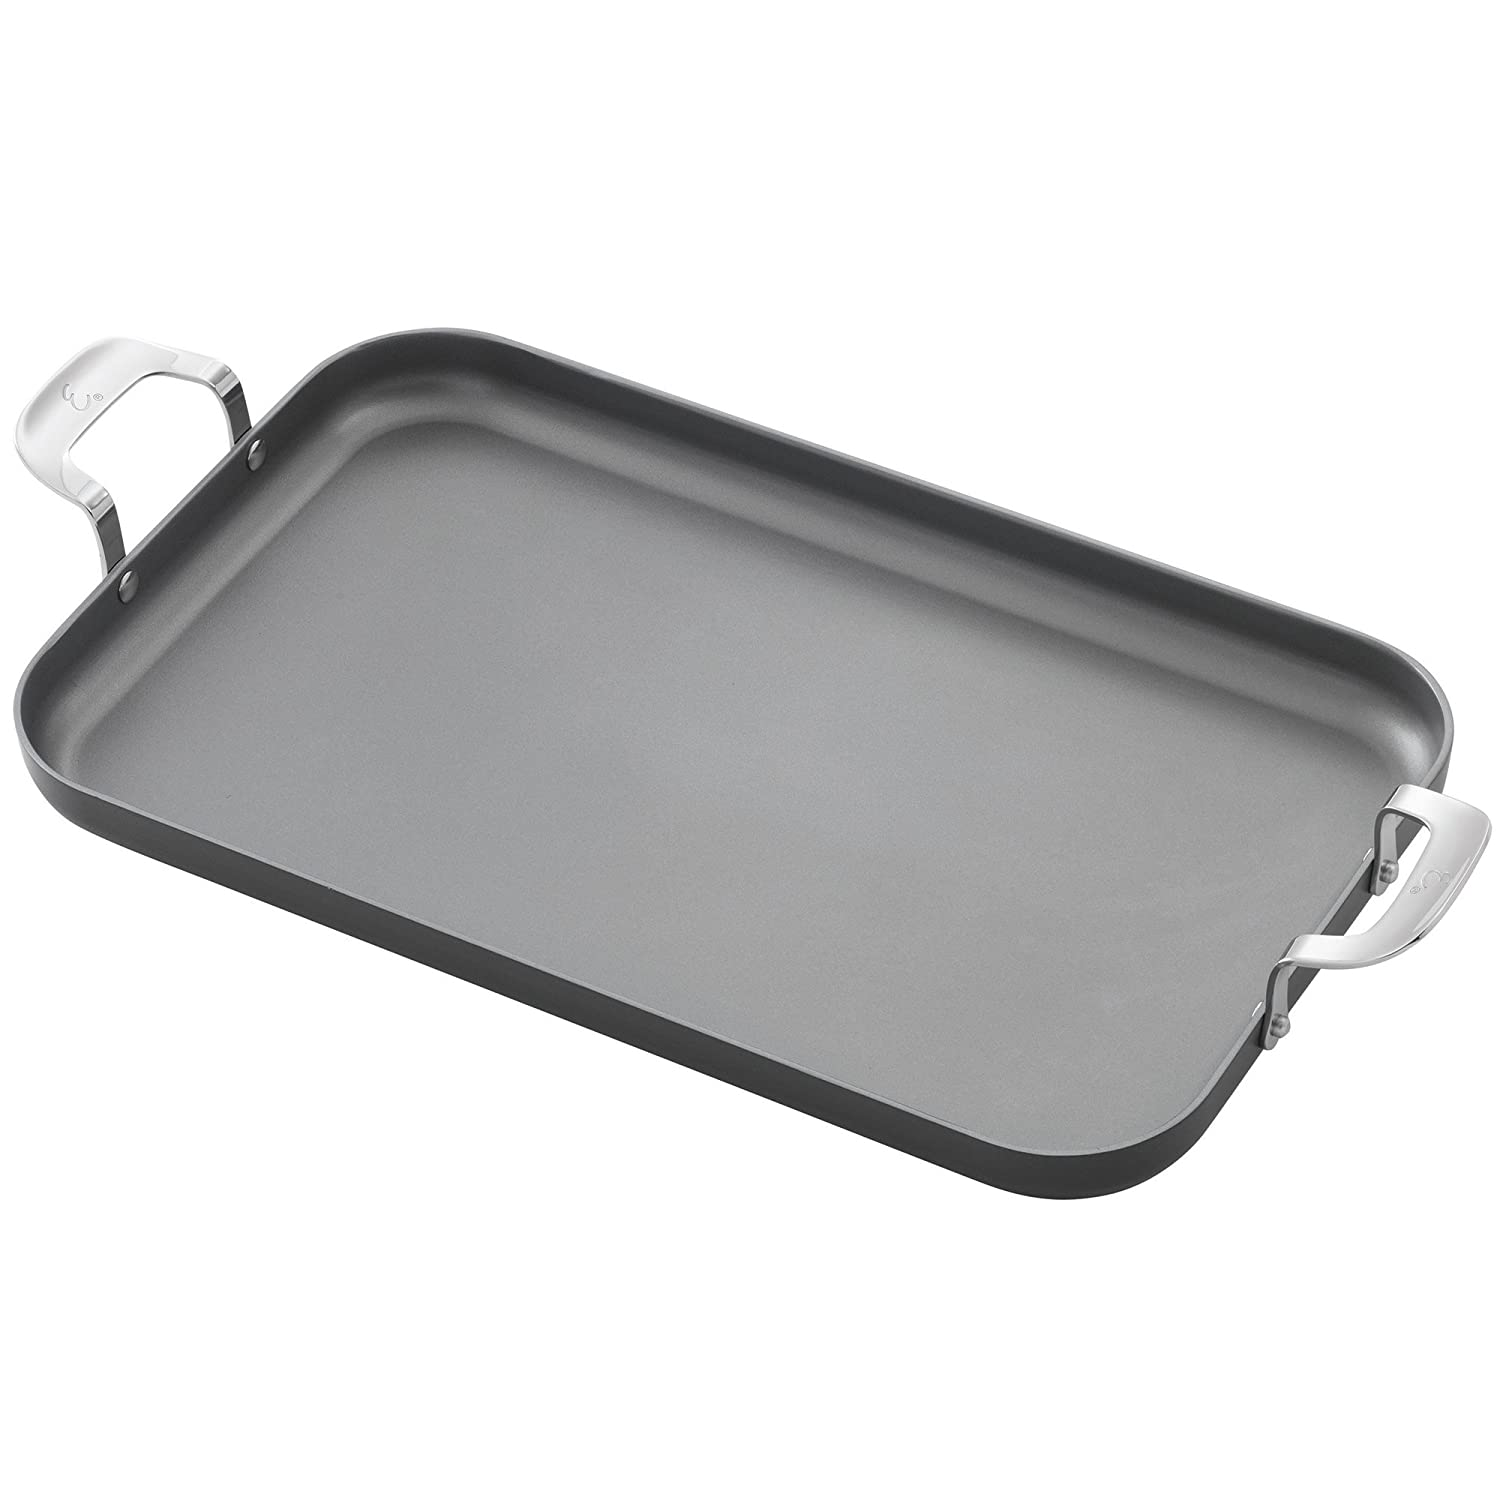 "Emeril Lagasse 62929 Dishwasher safe Nonstick Hard Anodized Double Burner Griddle, 11""x18"" ,Gray"